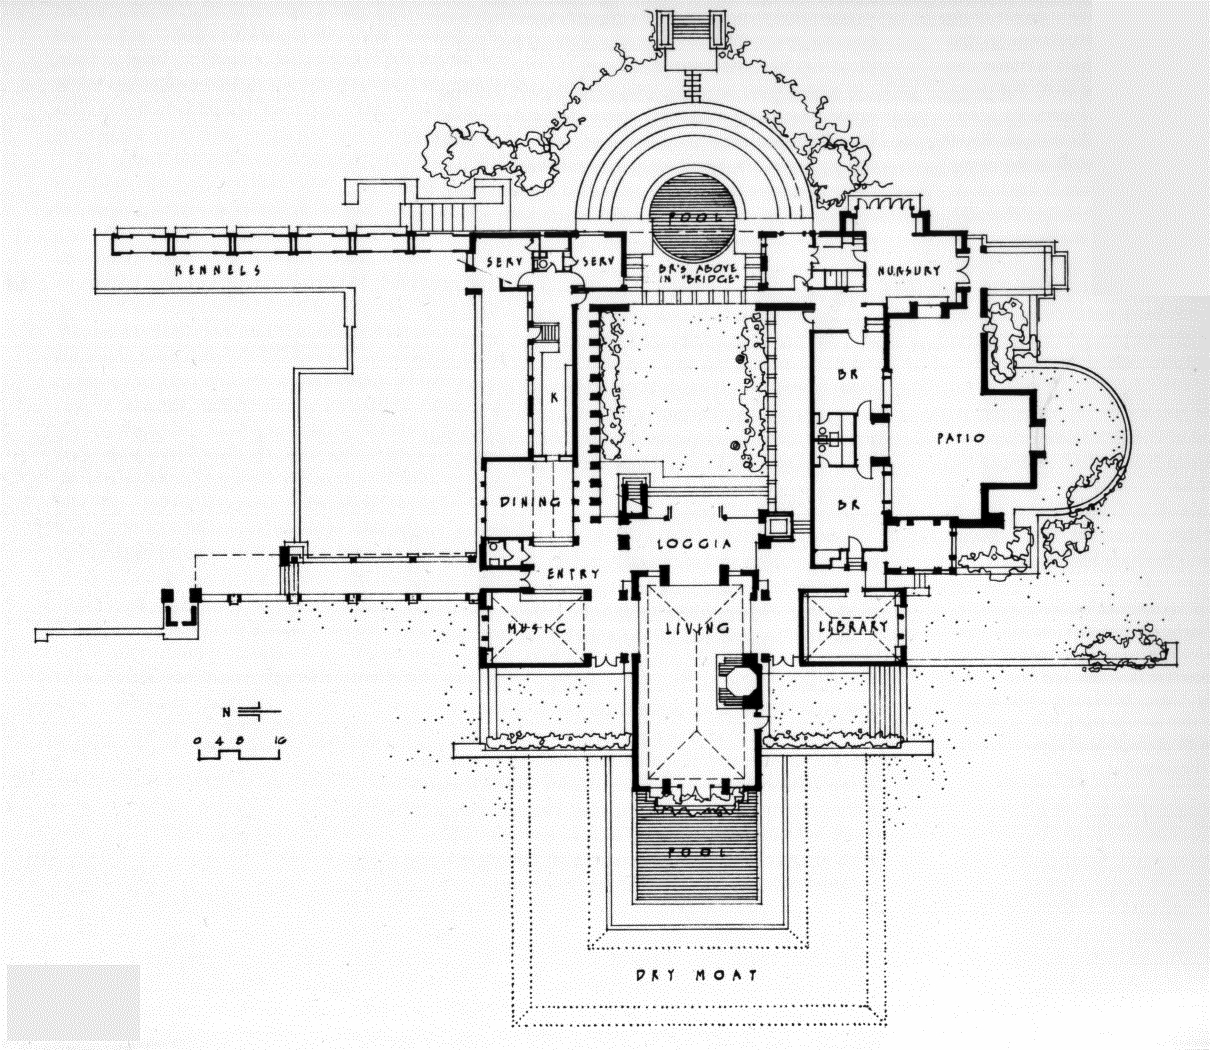 Frank lloyd wright waterfall house floor plans for Zimmerman house floor plan